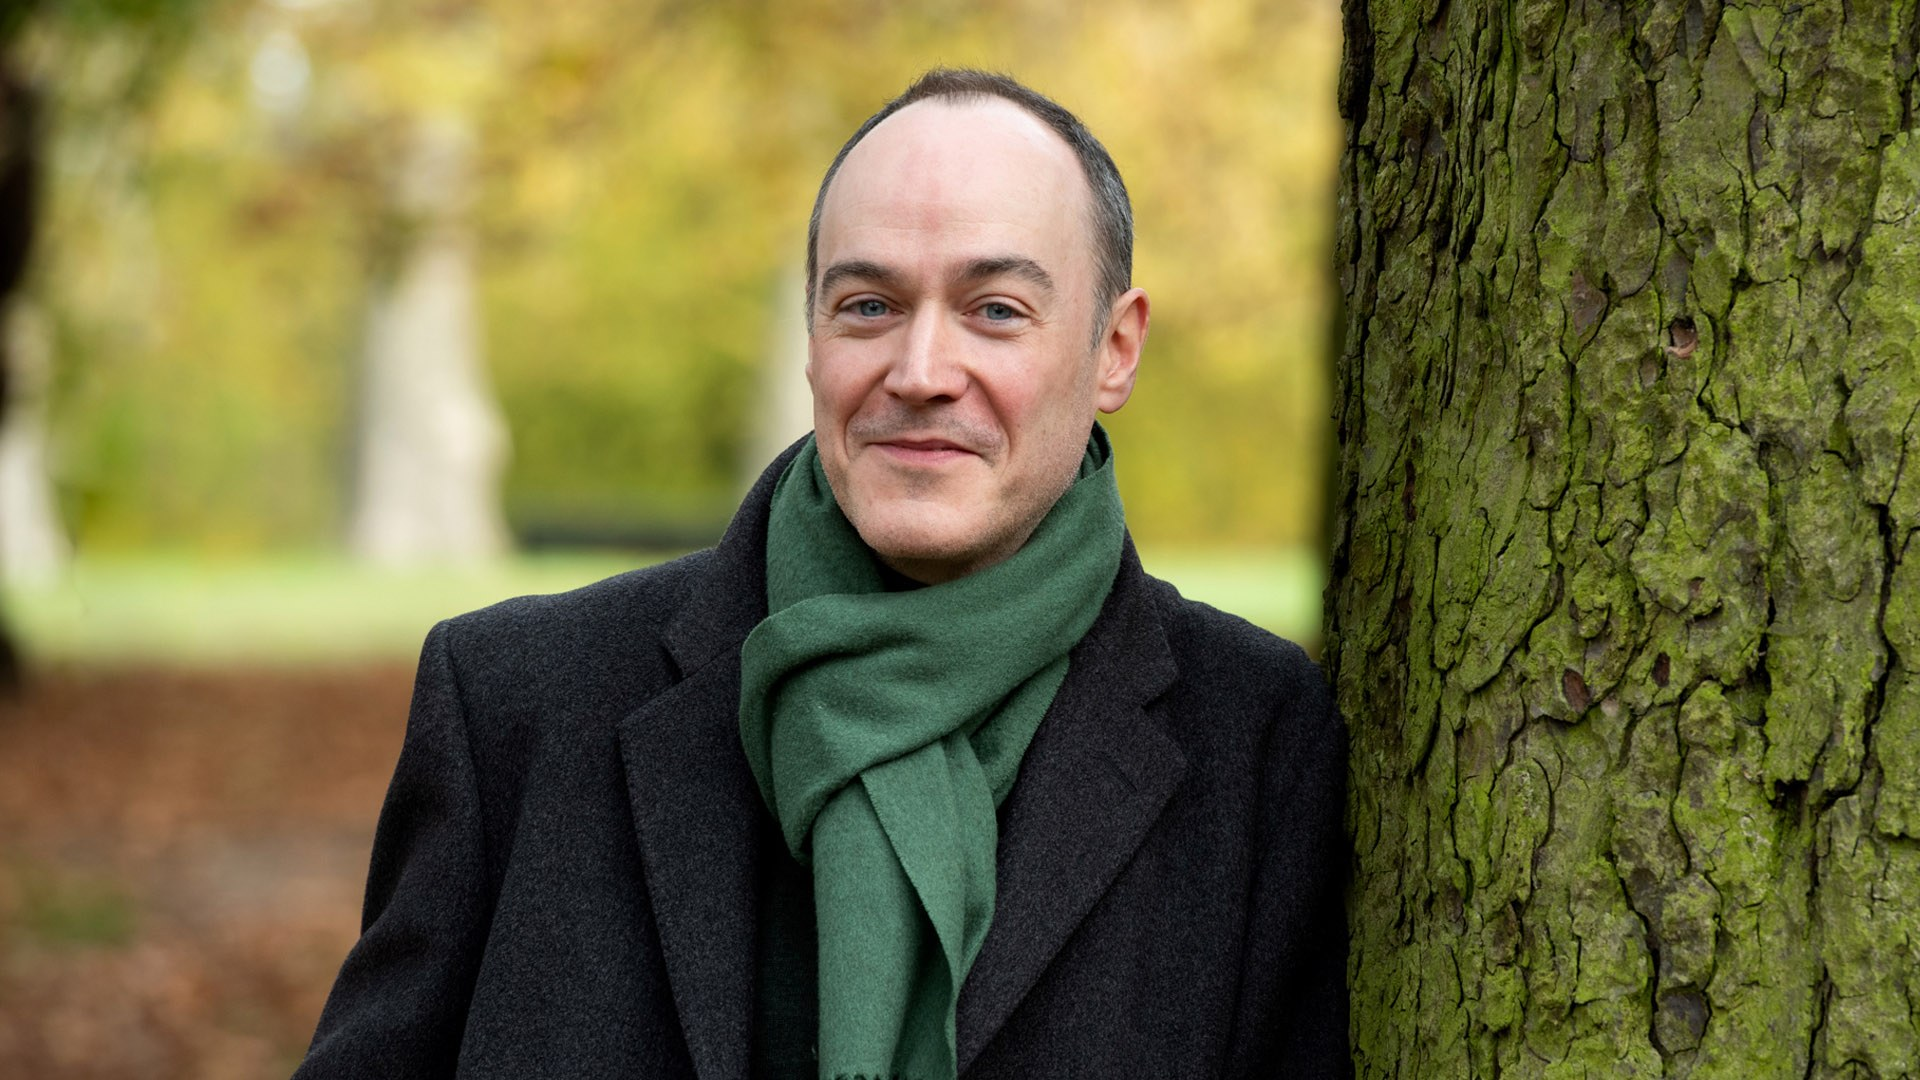 [Cancelled] Leon McCawley (Masterclass)